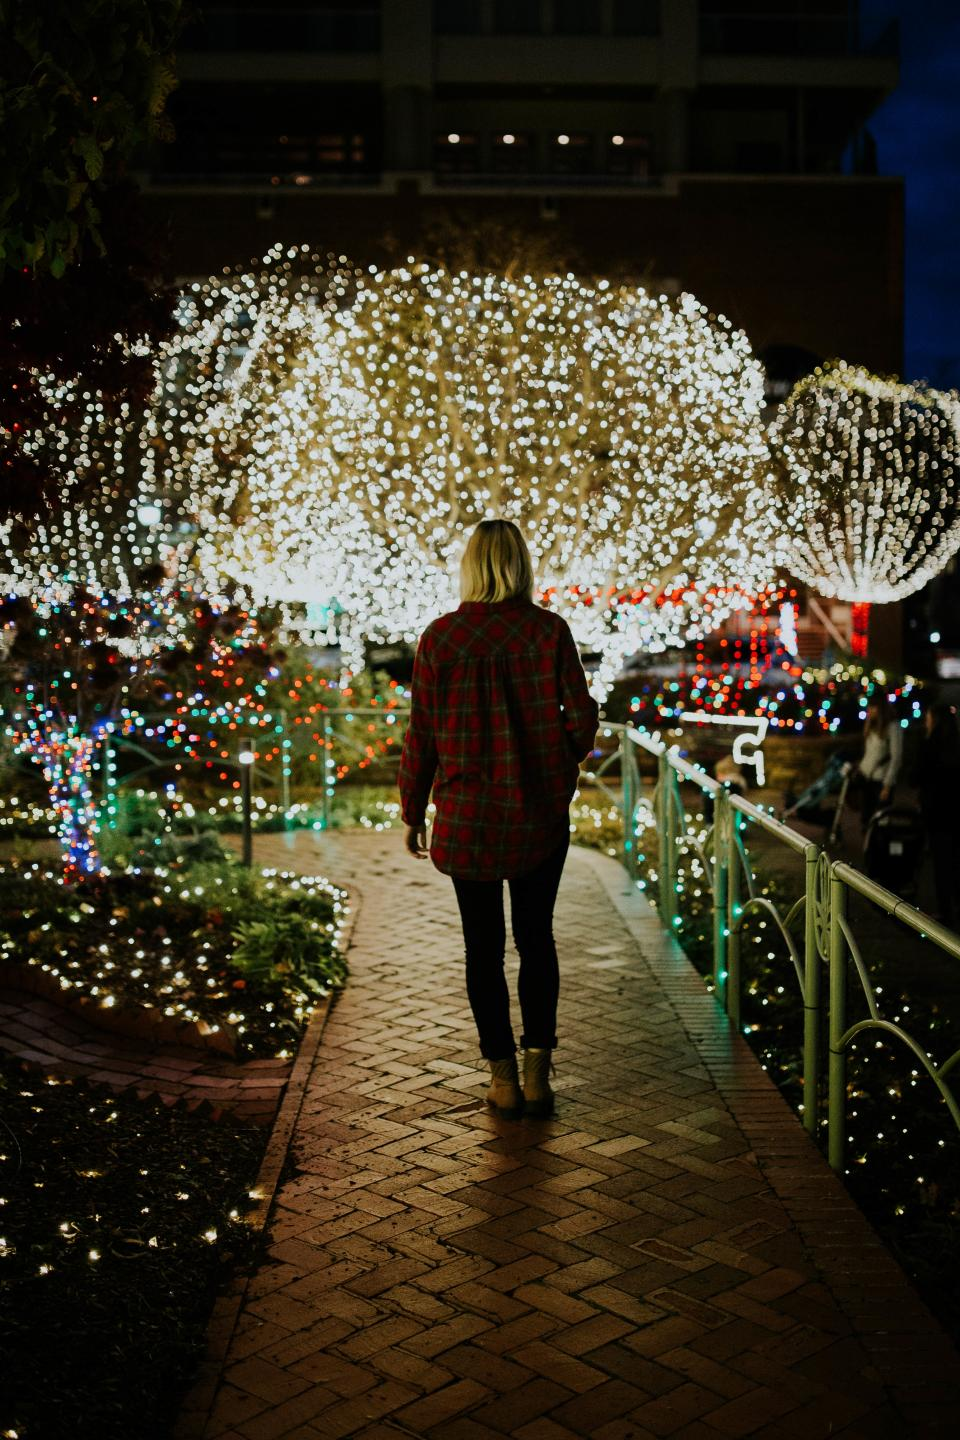 people, woman, lights, dark, night, festival, celebration, holiday, christmas lights, christmas, tree